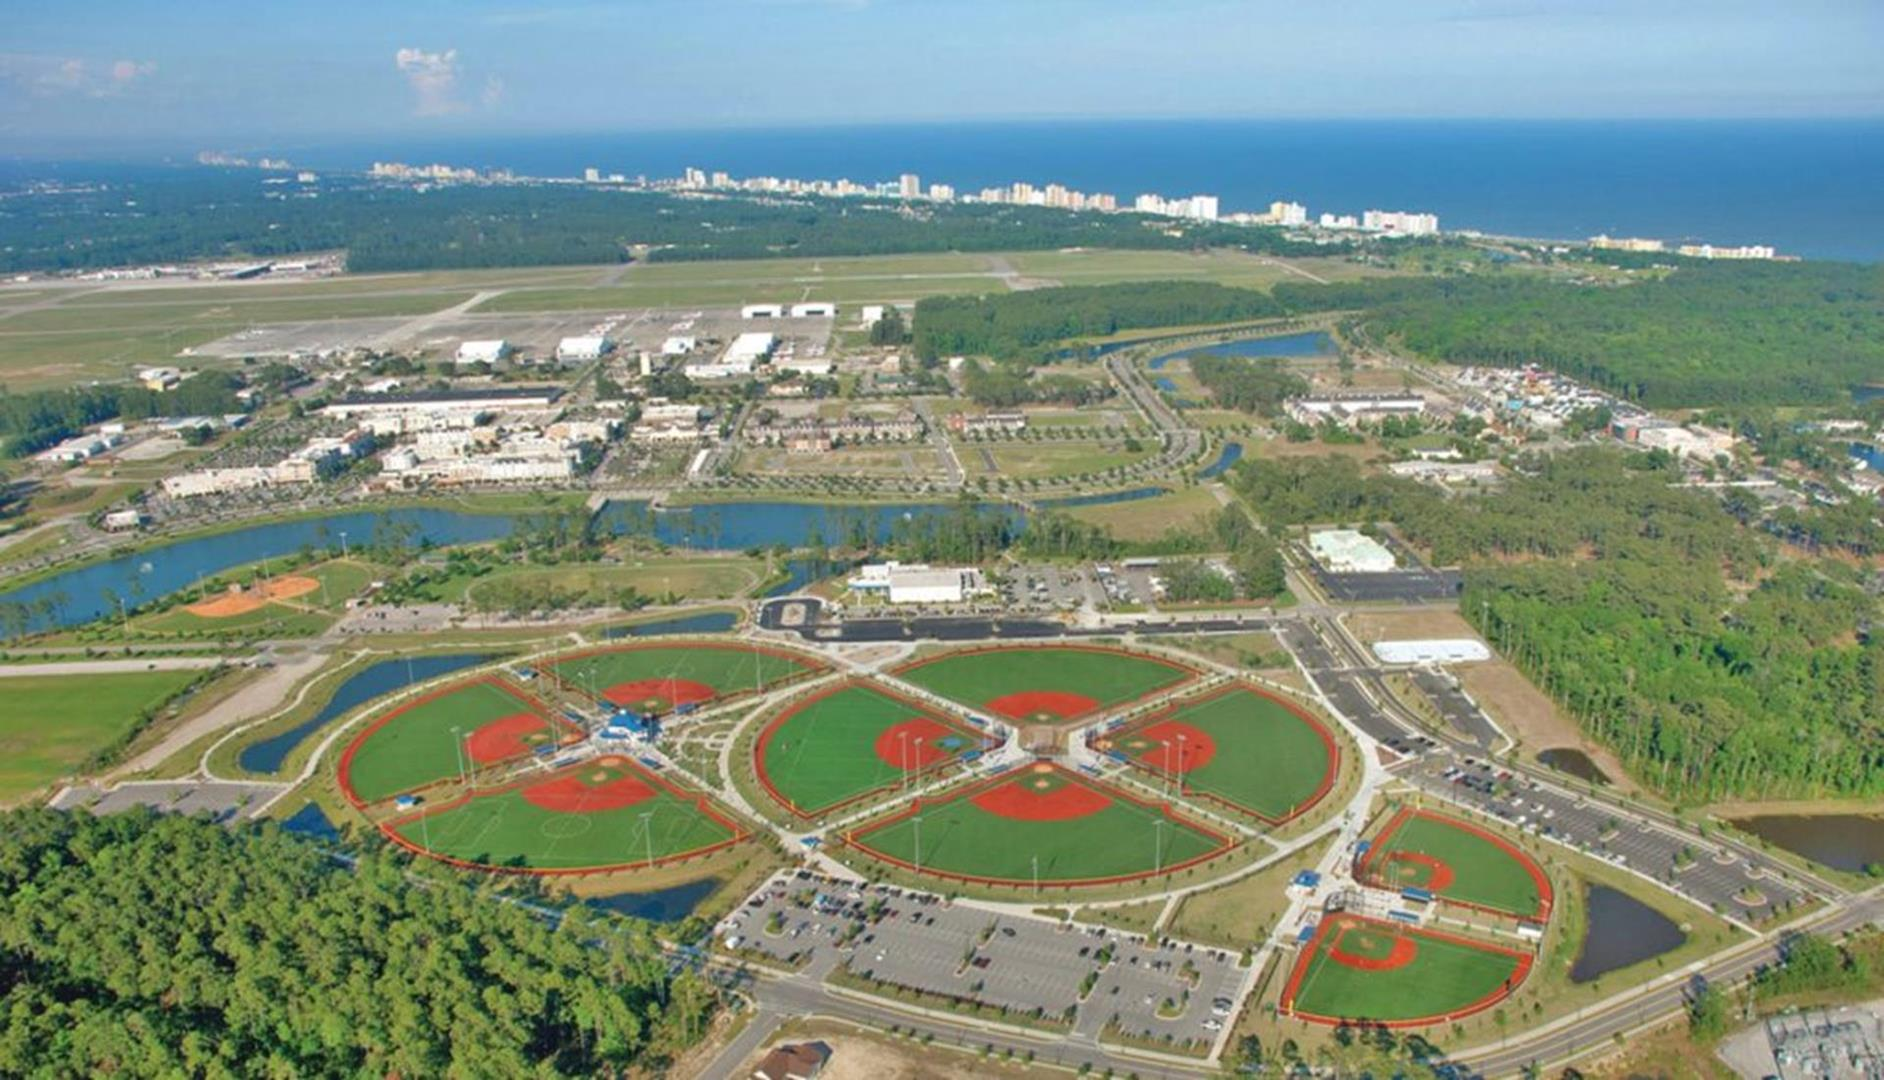 Though The Midwest Region Is Rising In Youth Baseball Tournament Ranks Myrtle Beach South Carolina Still Seems To Attract Most Attention When